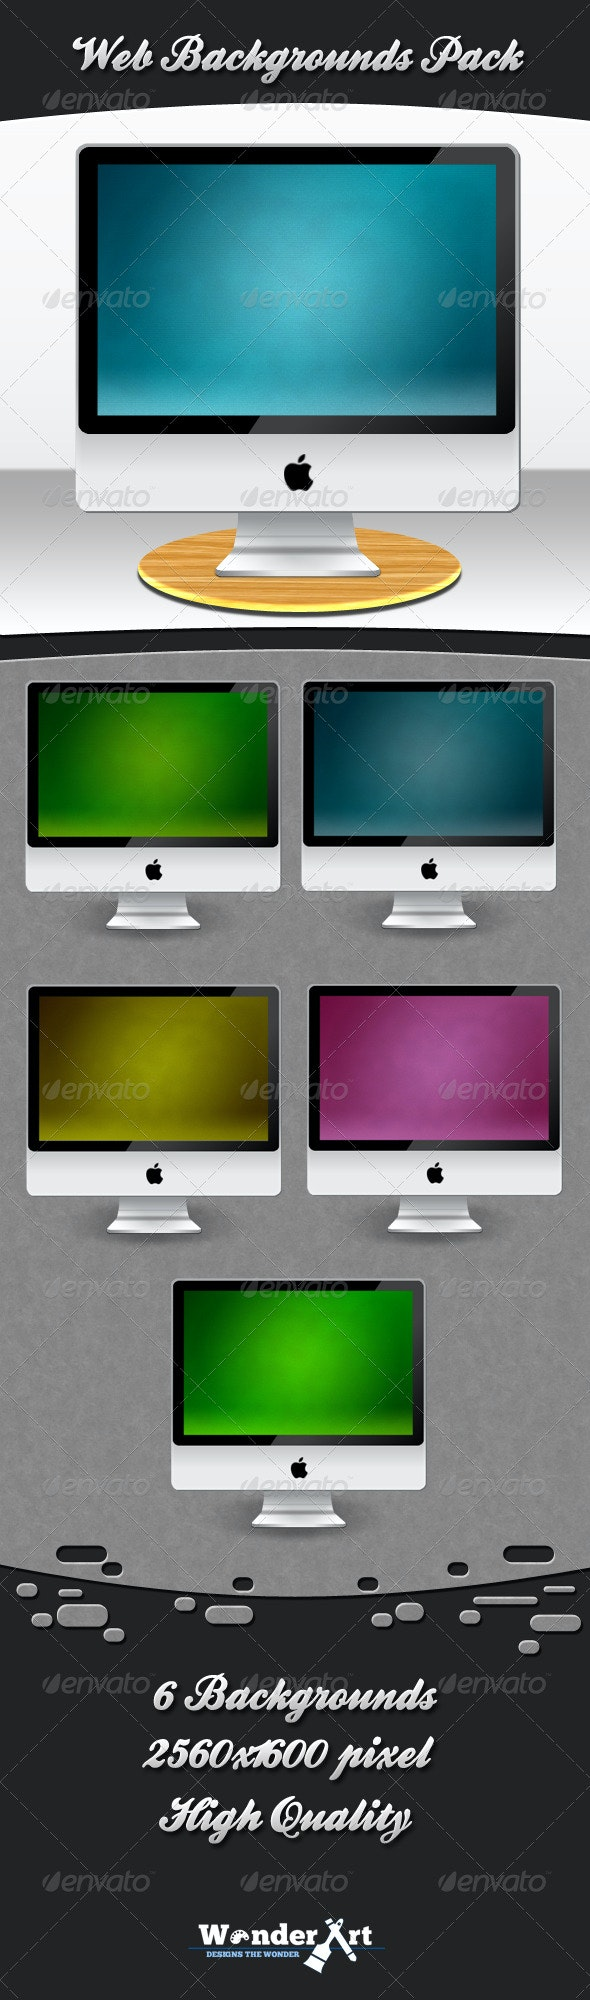 Web Backgrounds Pack - Backgrounds Graphics